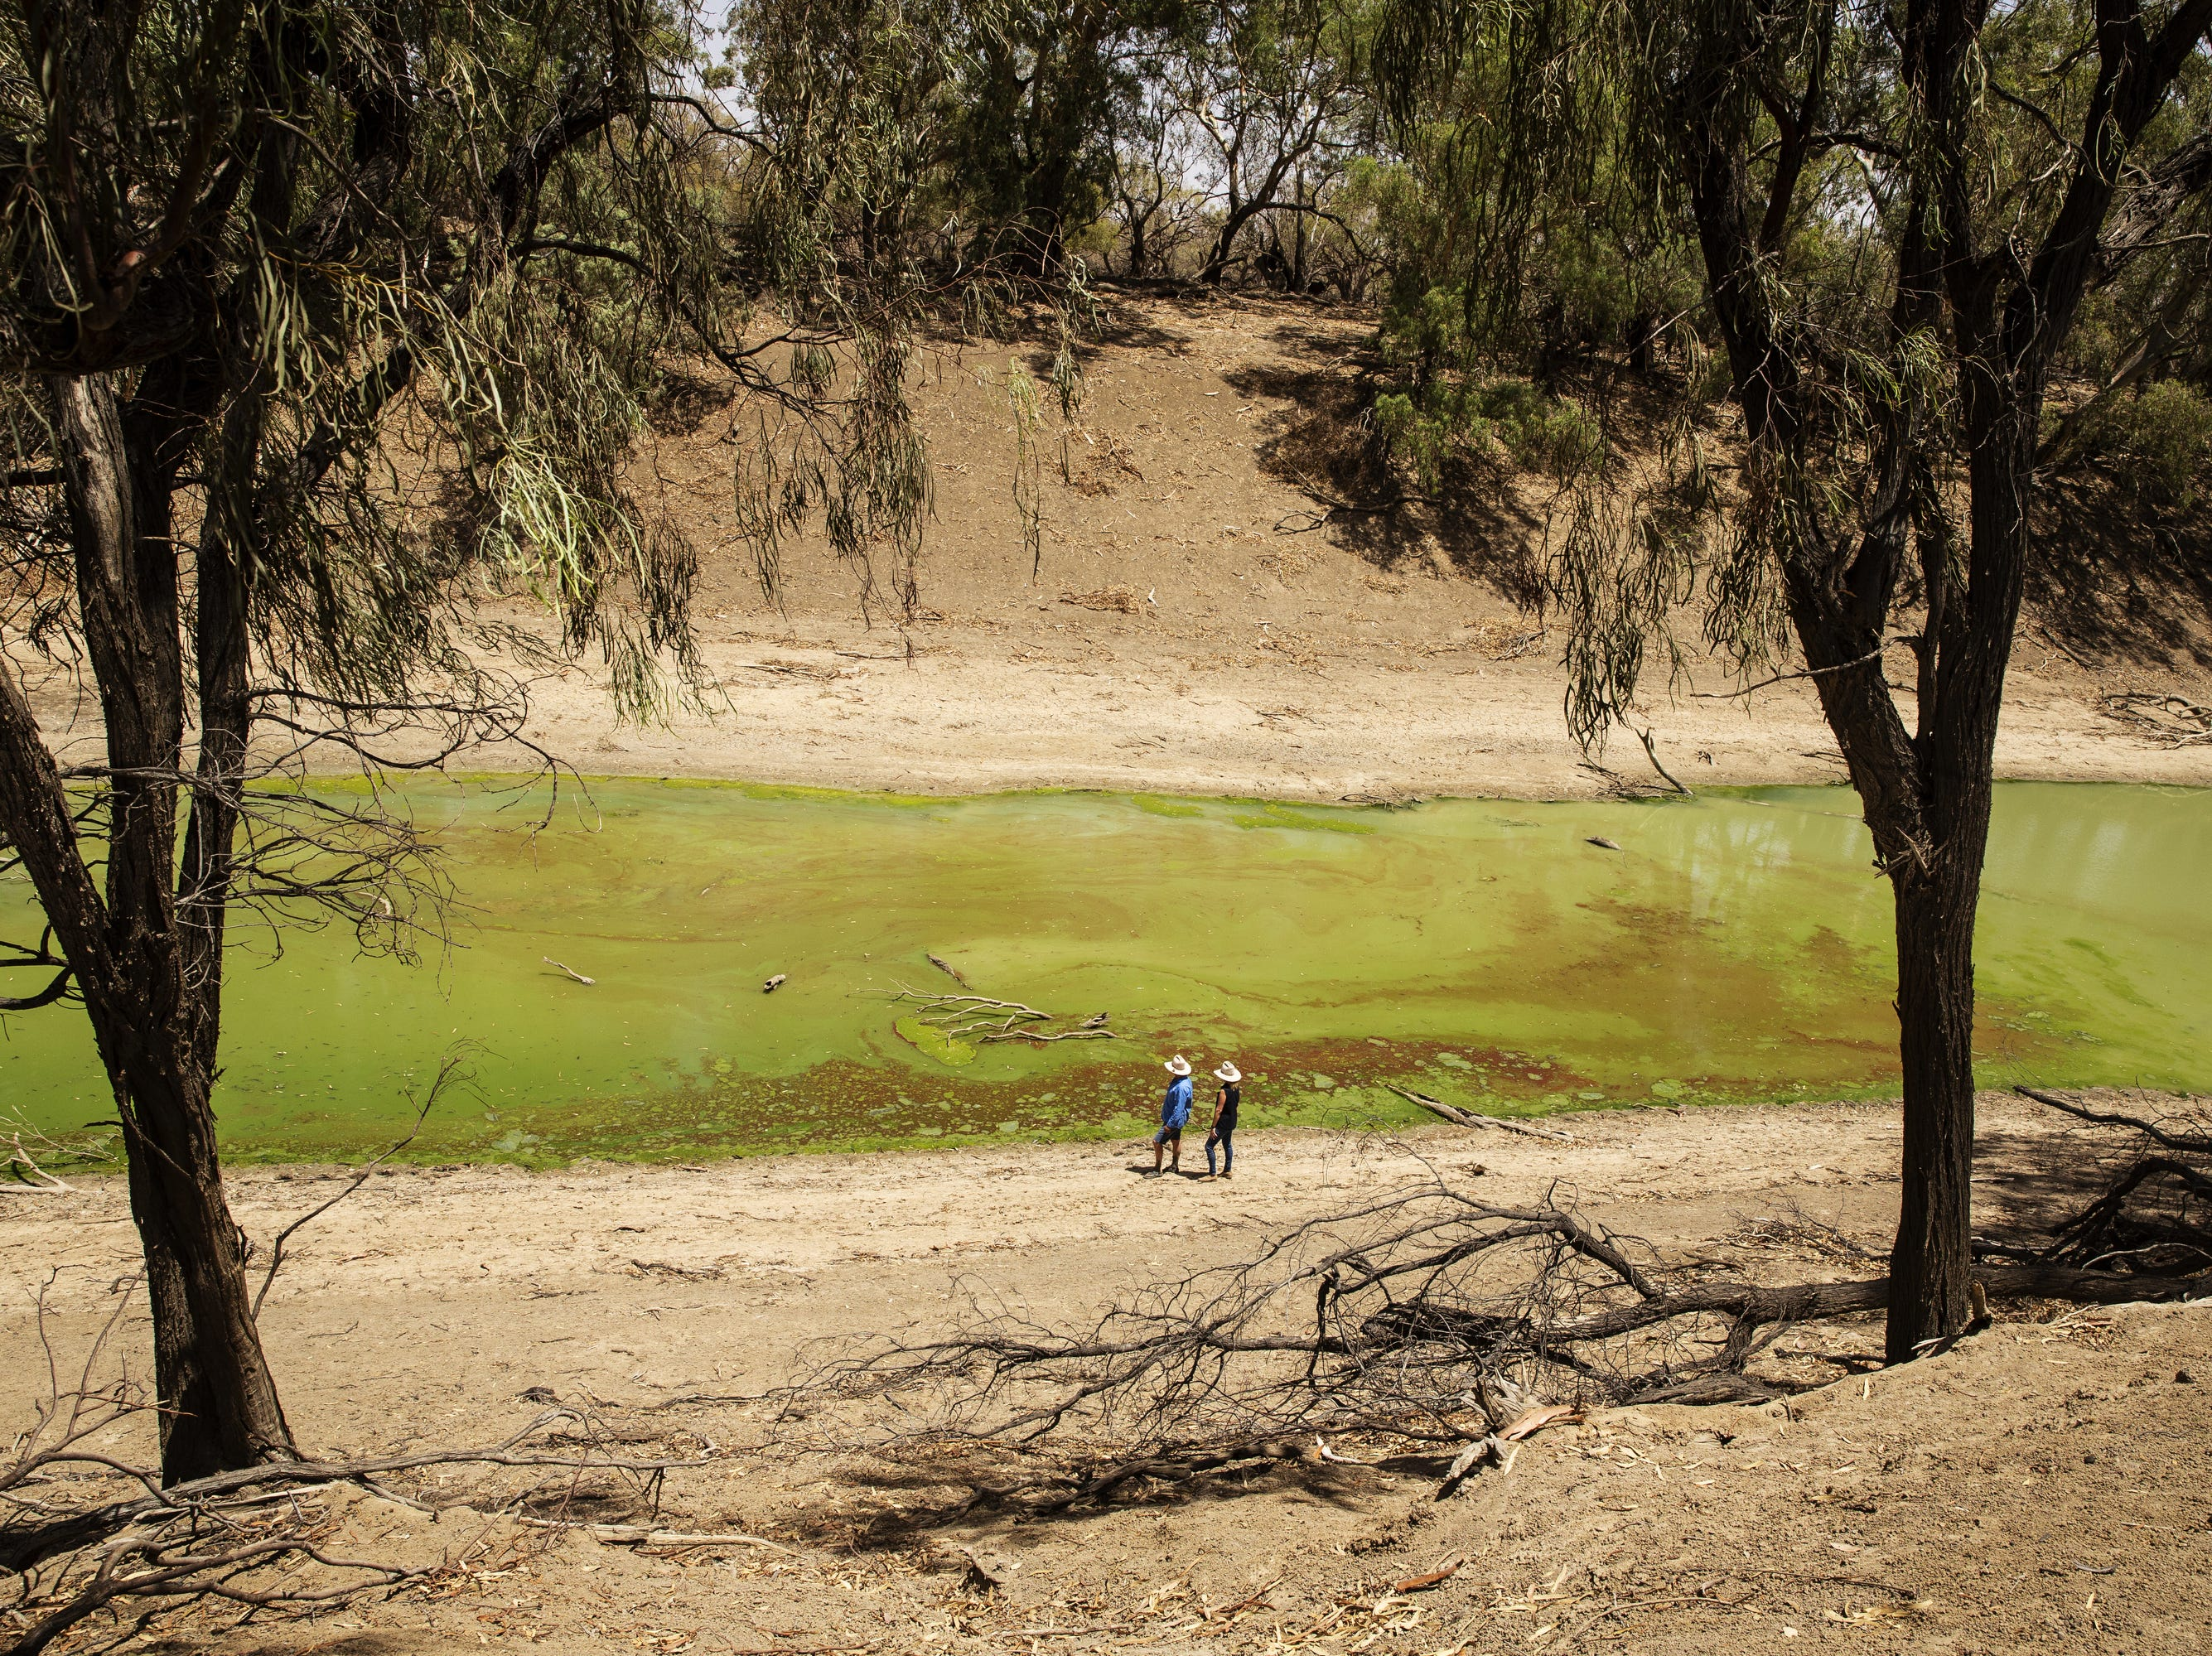 Chrissy and Bill Ashby pose for a portrait on the banks of the Darling River near their property Trevallyn Station on Jan. 16, 2019 in Tilpa, Australia. Chrissy elaborates on being able to deal with the extreme heat, the drought, the dust but is deeply concerned about getting justice in regards to the poor state of the river. Local communities in the Darling River area are facing drought and clean water shortages as debate grows over the alleged mismanagement of the Murray-Darling Basin. Recent mass kills of hundreds of thousands of fish in the Darling river have raised serious questions about the way WaterNSW is managing the lakes system, and calls for a royal commission.